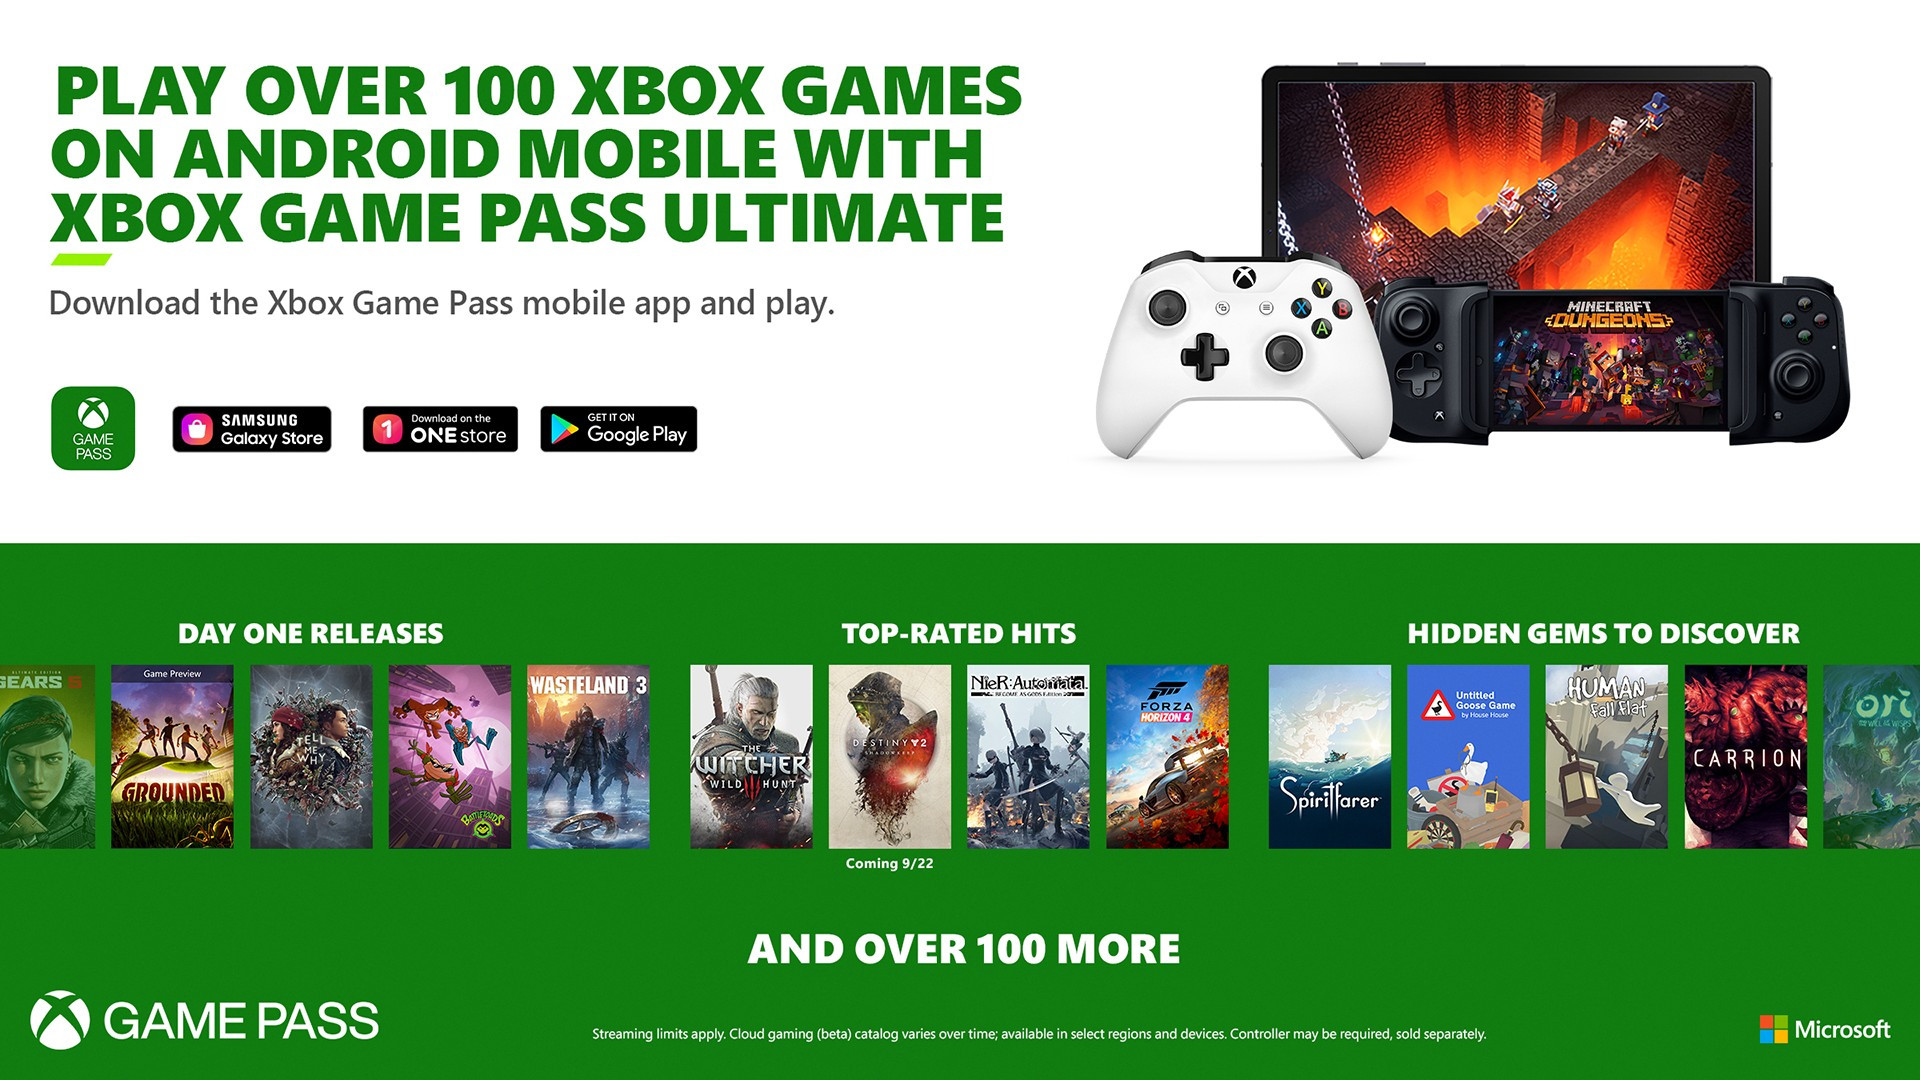 Microsoft Reveals xCloud Launch Games Lineup and 'Minecraft Dungeons' with Touch Controls Ahead of Tomorrow's Launch on Android